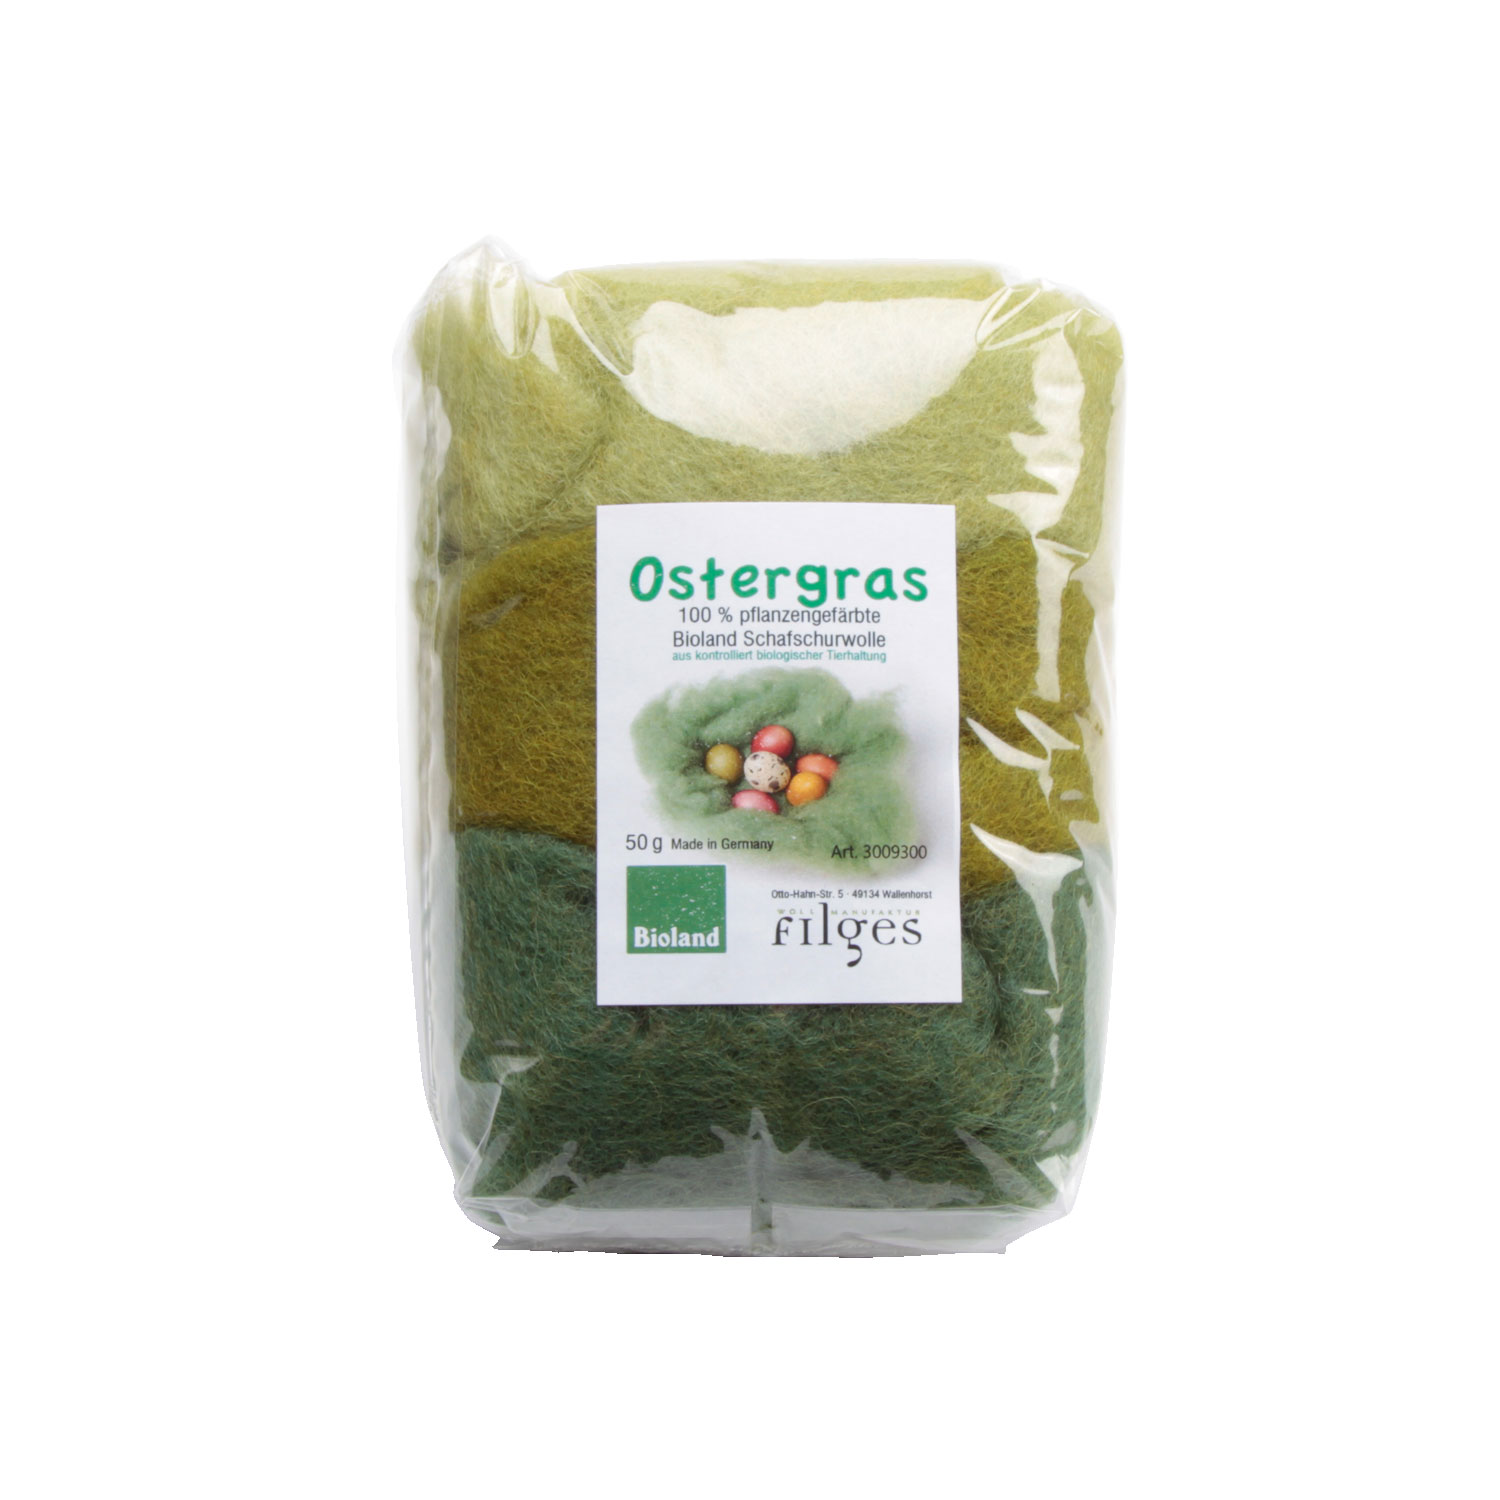 Filges Plant-dued Fairy Wool in Green Shades